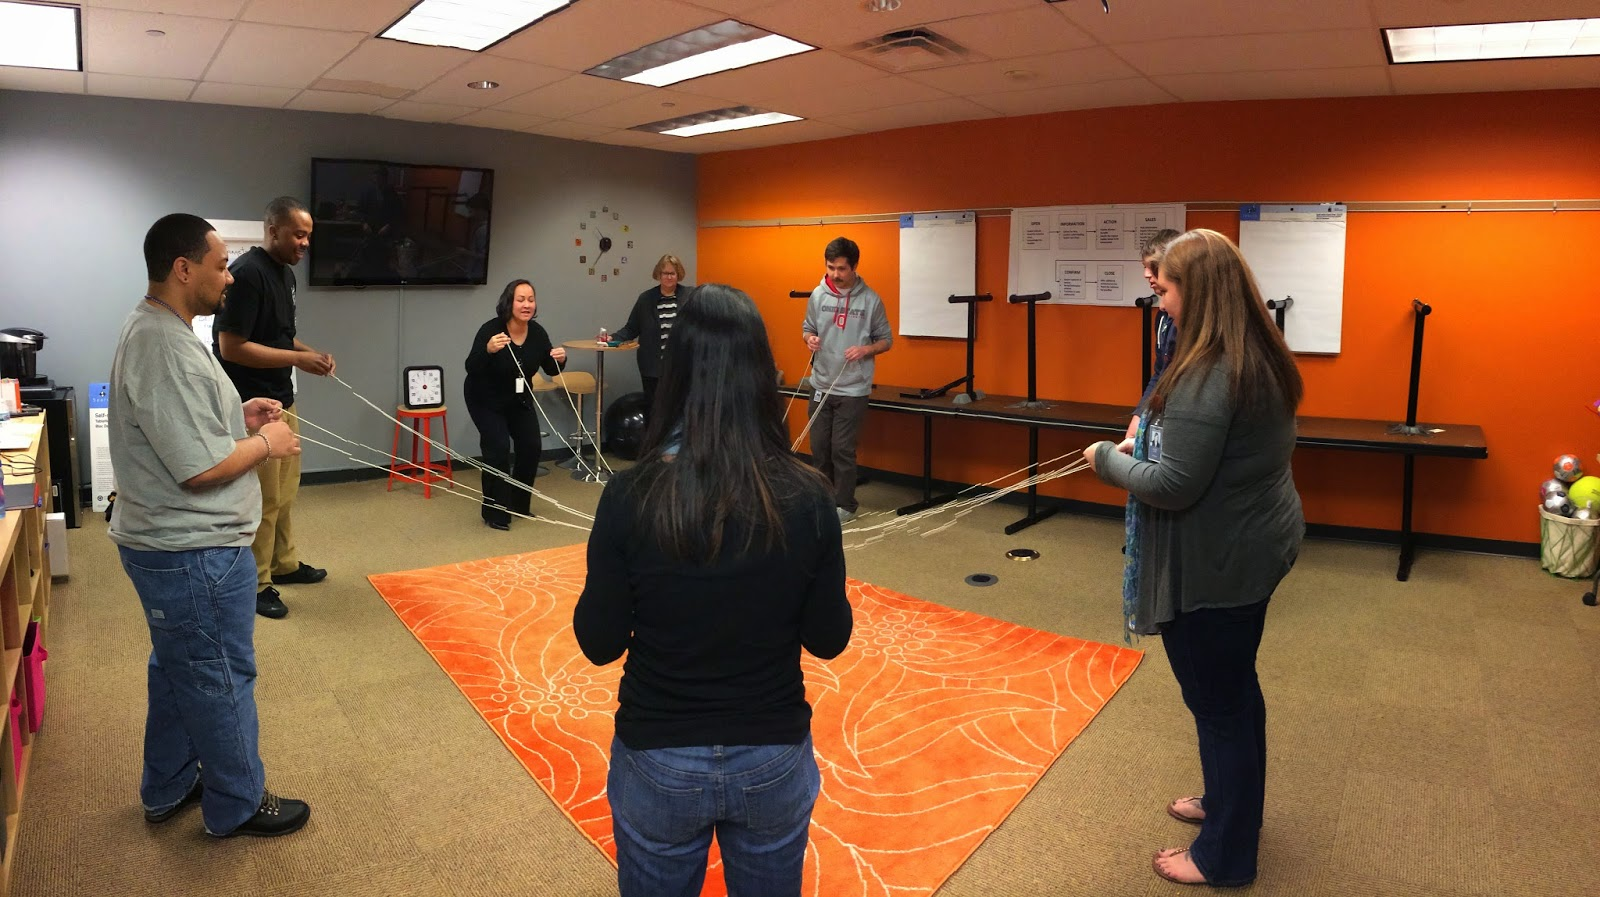 Team Building Activities For Adults At Work